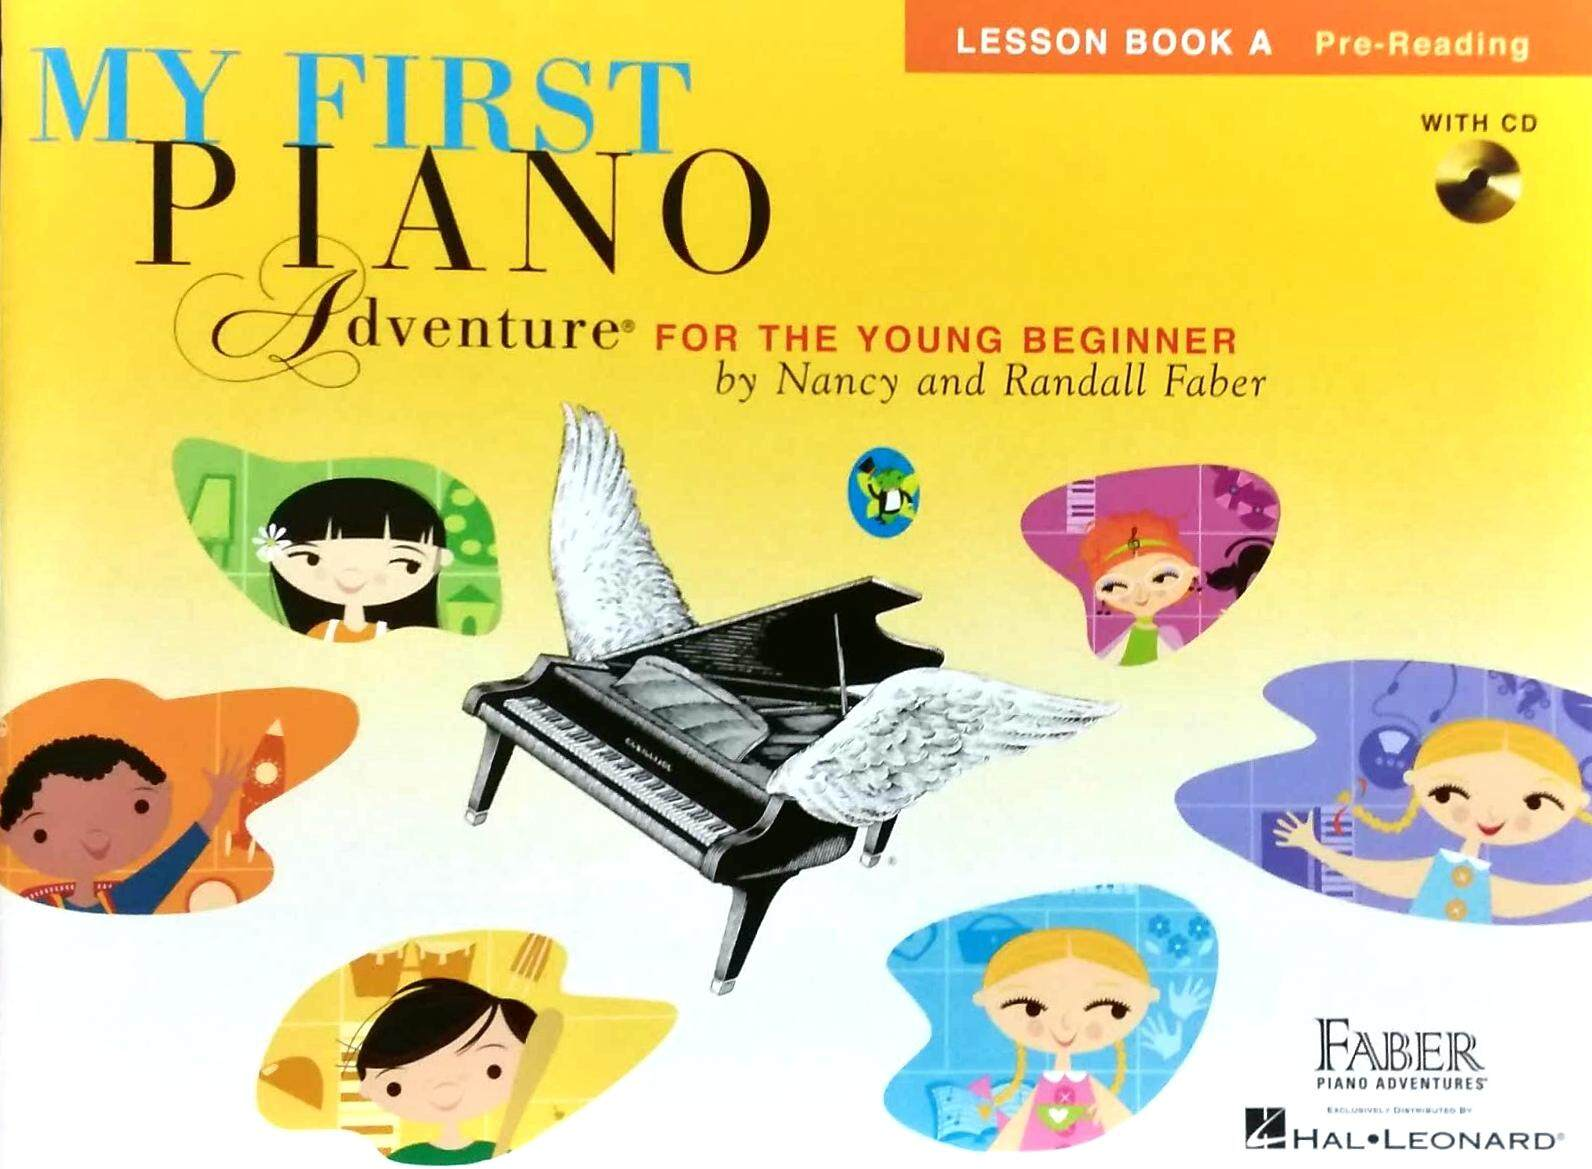 My First Piano Adventure Lesson Book A